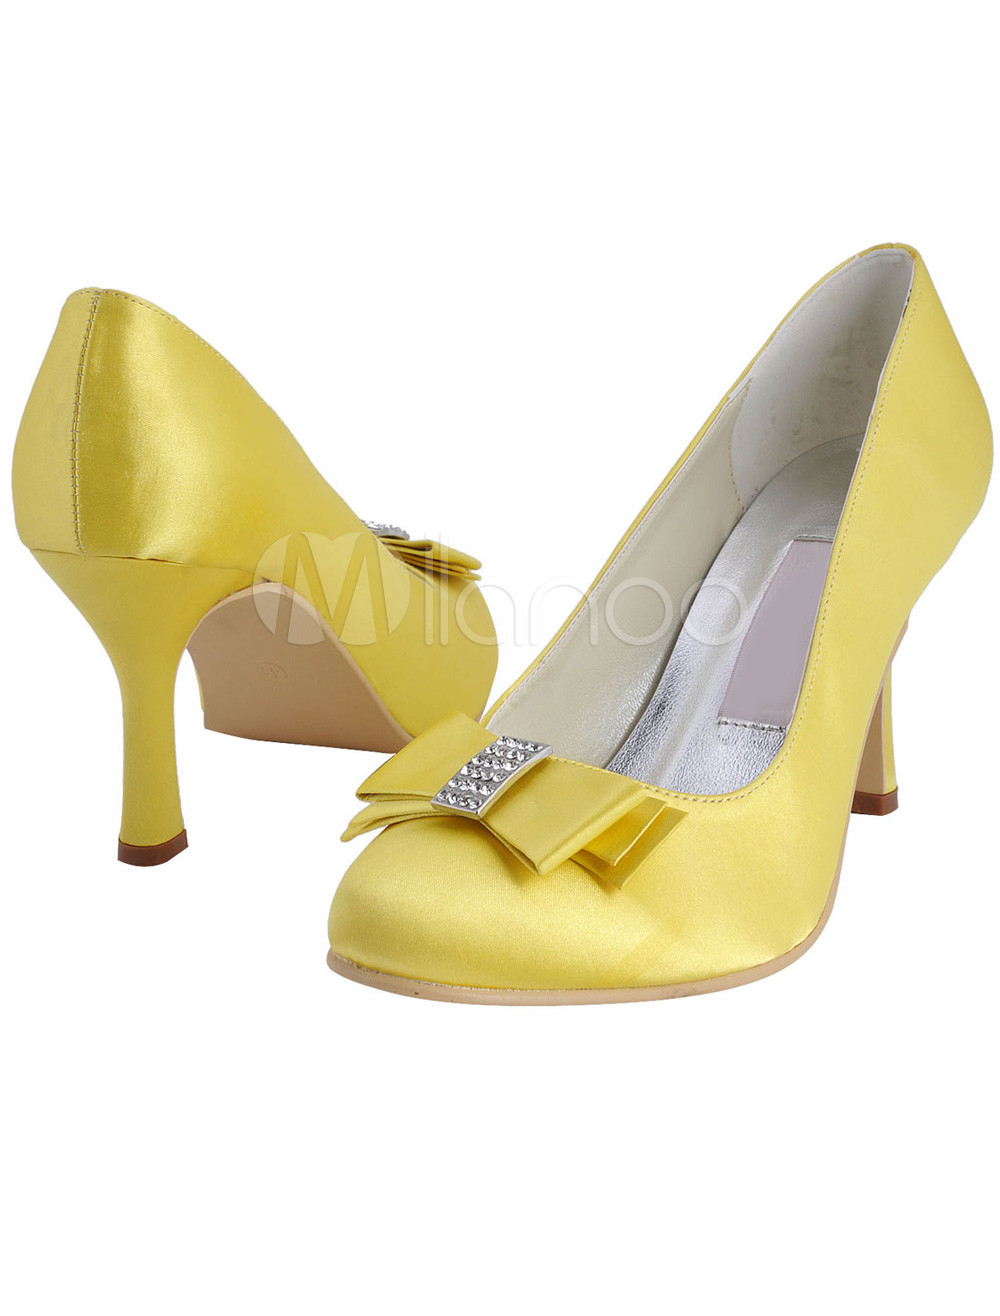 11453300494c05 Yellow Satin Rhinestone Romantic Wedding Pumps - Milanoo.com